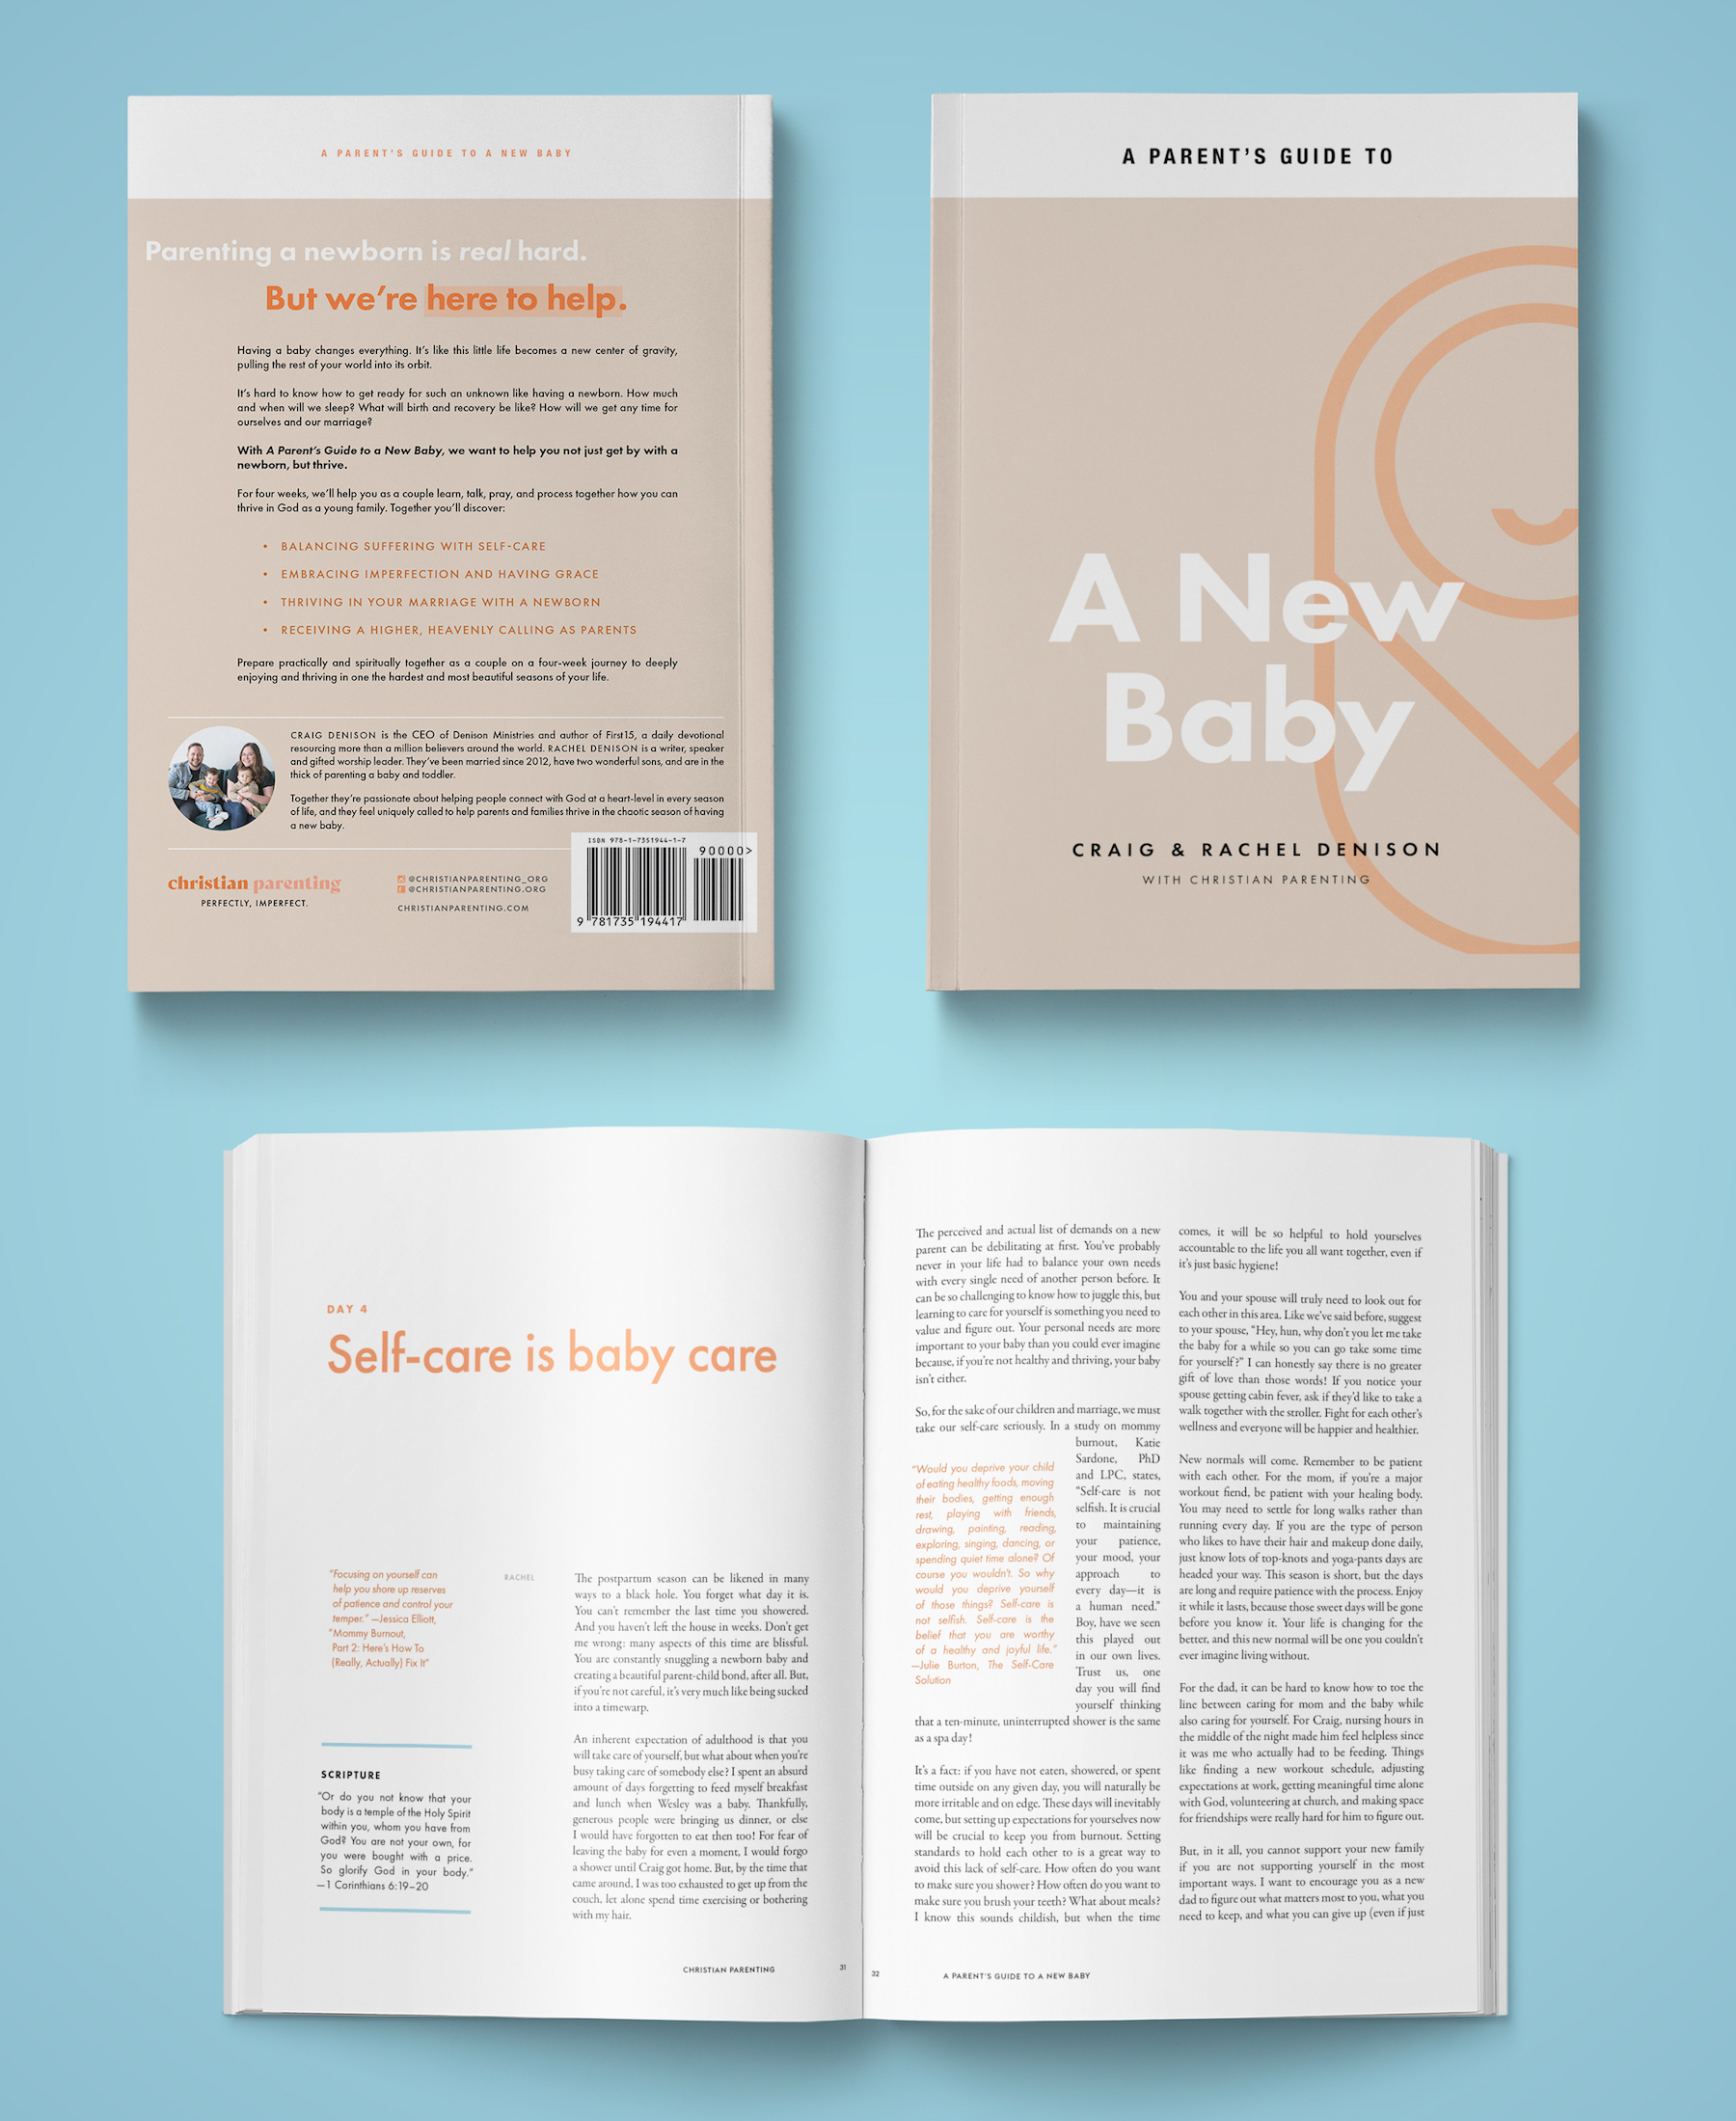 Be ready to thrive with a newborn!